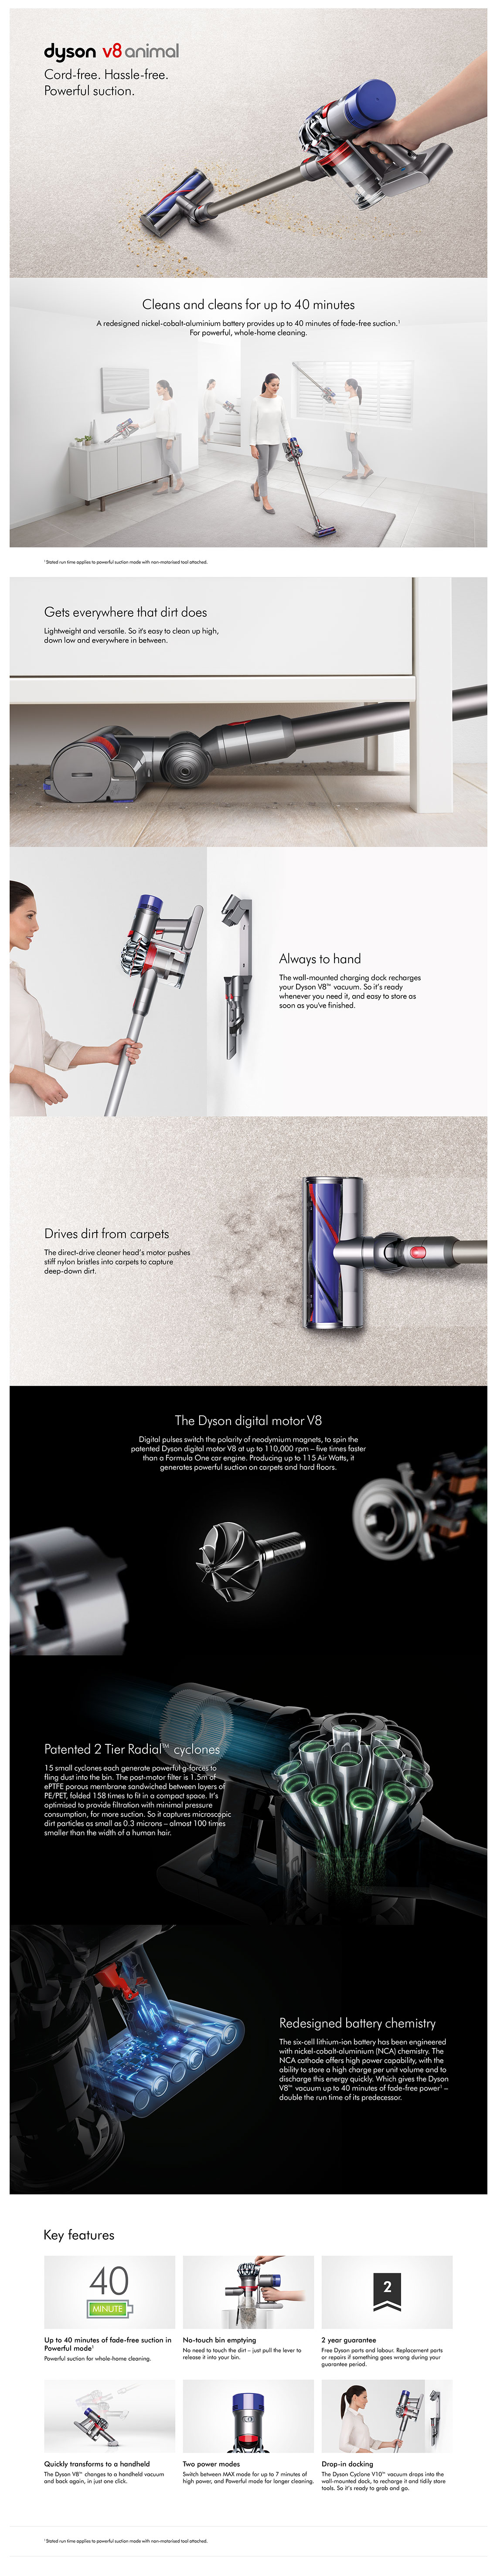 Dyson V8 Animal+ Cordless Bagless Vacuum Cleaner